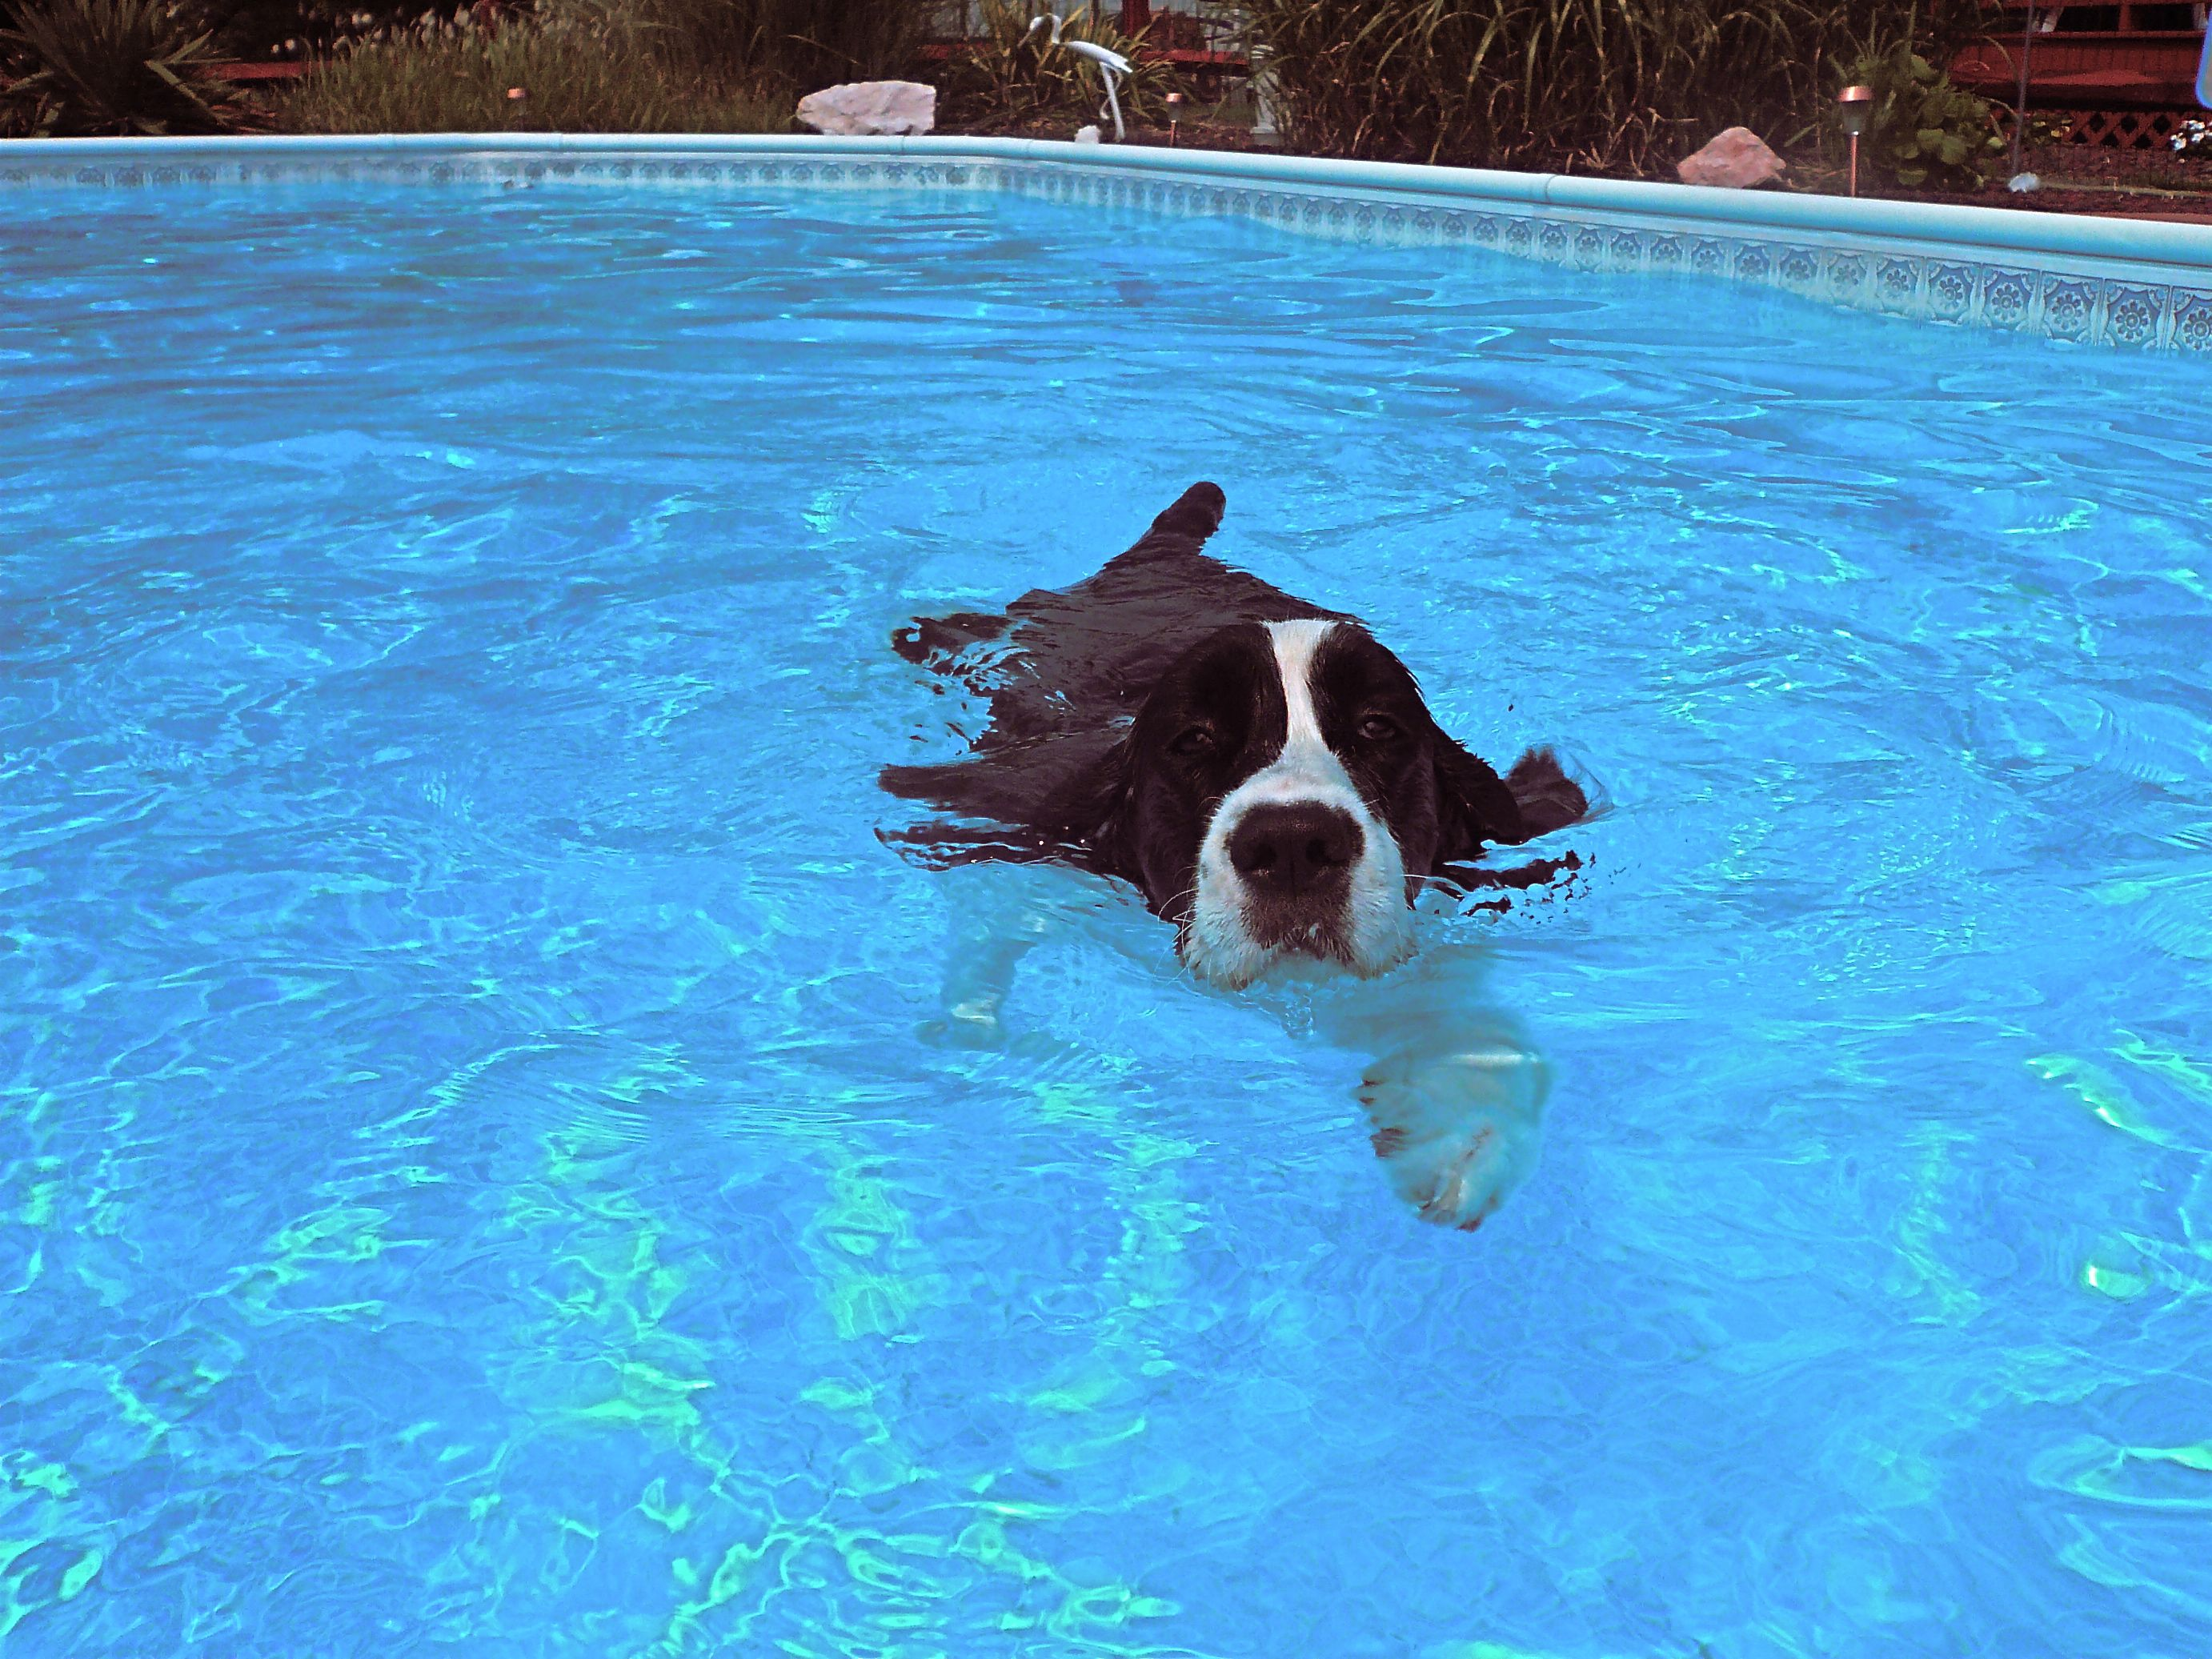 Nothing more relaxing than frolicking in the pool!